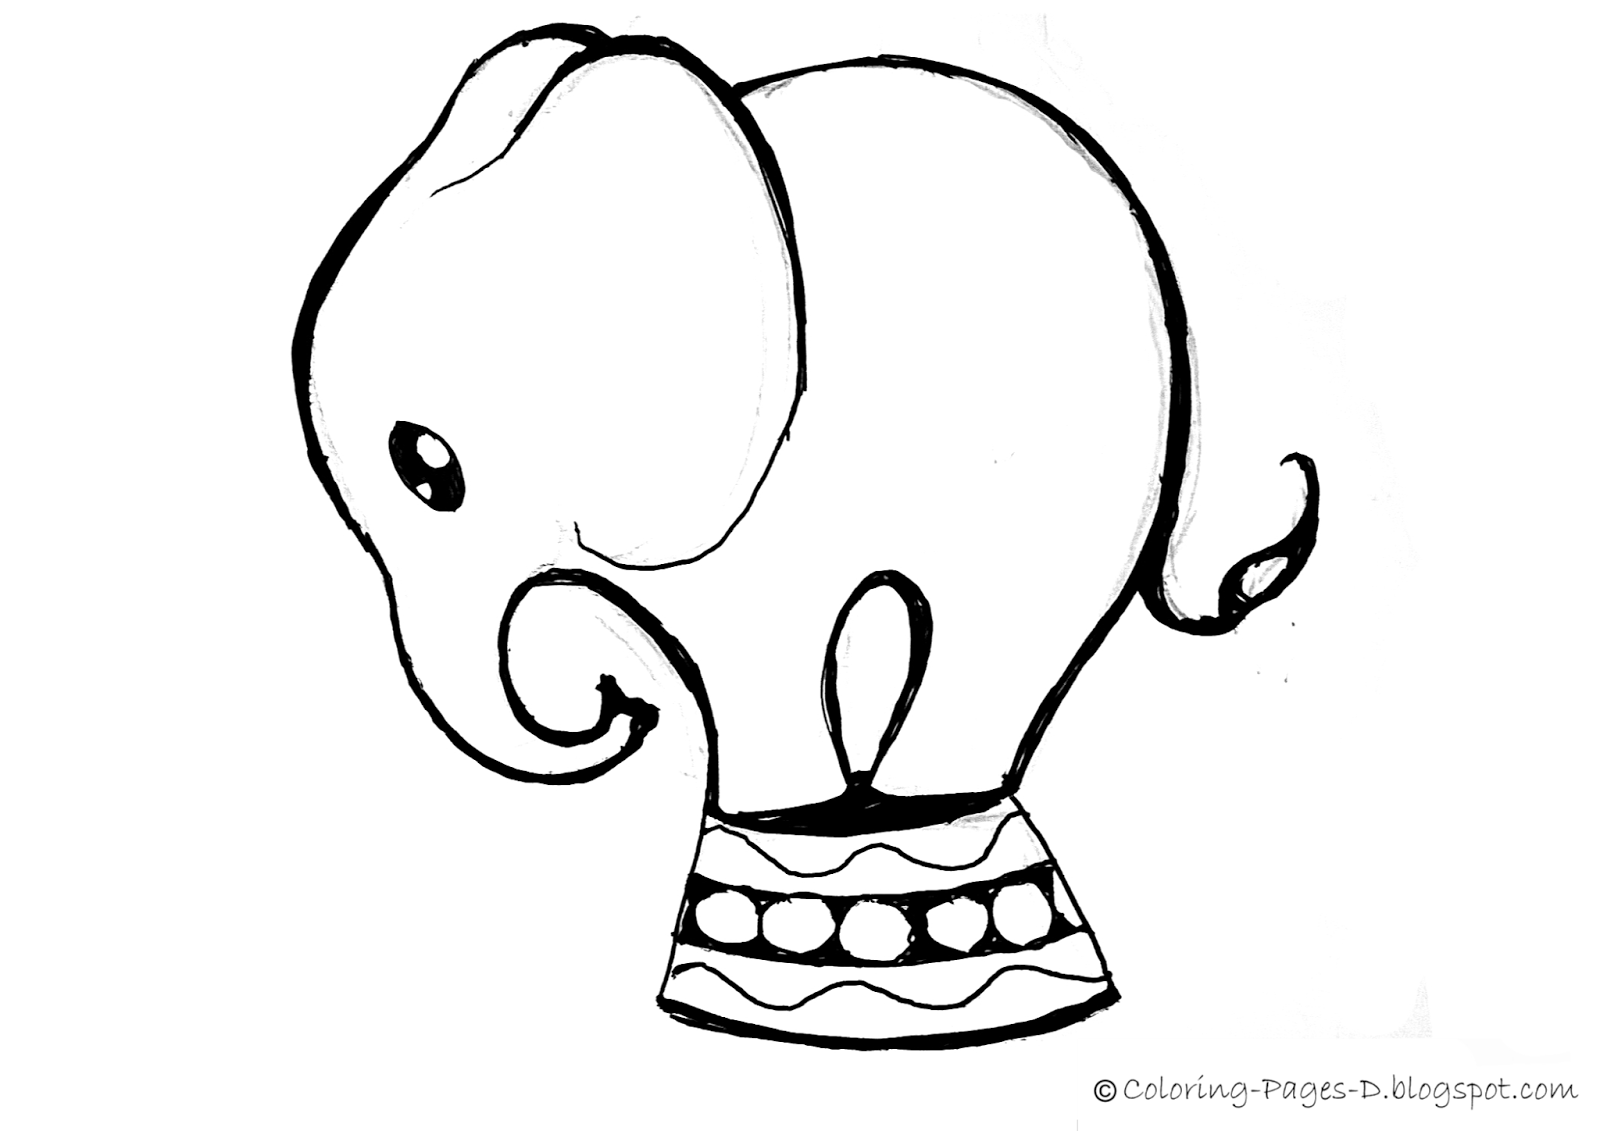 Circus Elephant Coloring Carnival #124 Circus Elephant Coloring ... | 1131x1600